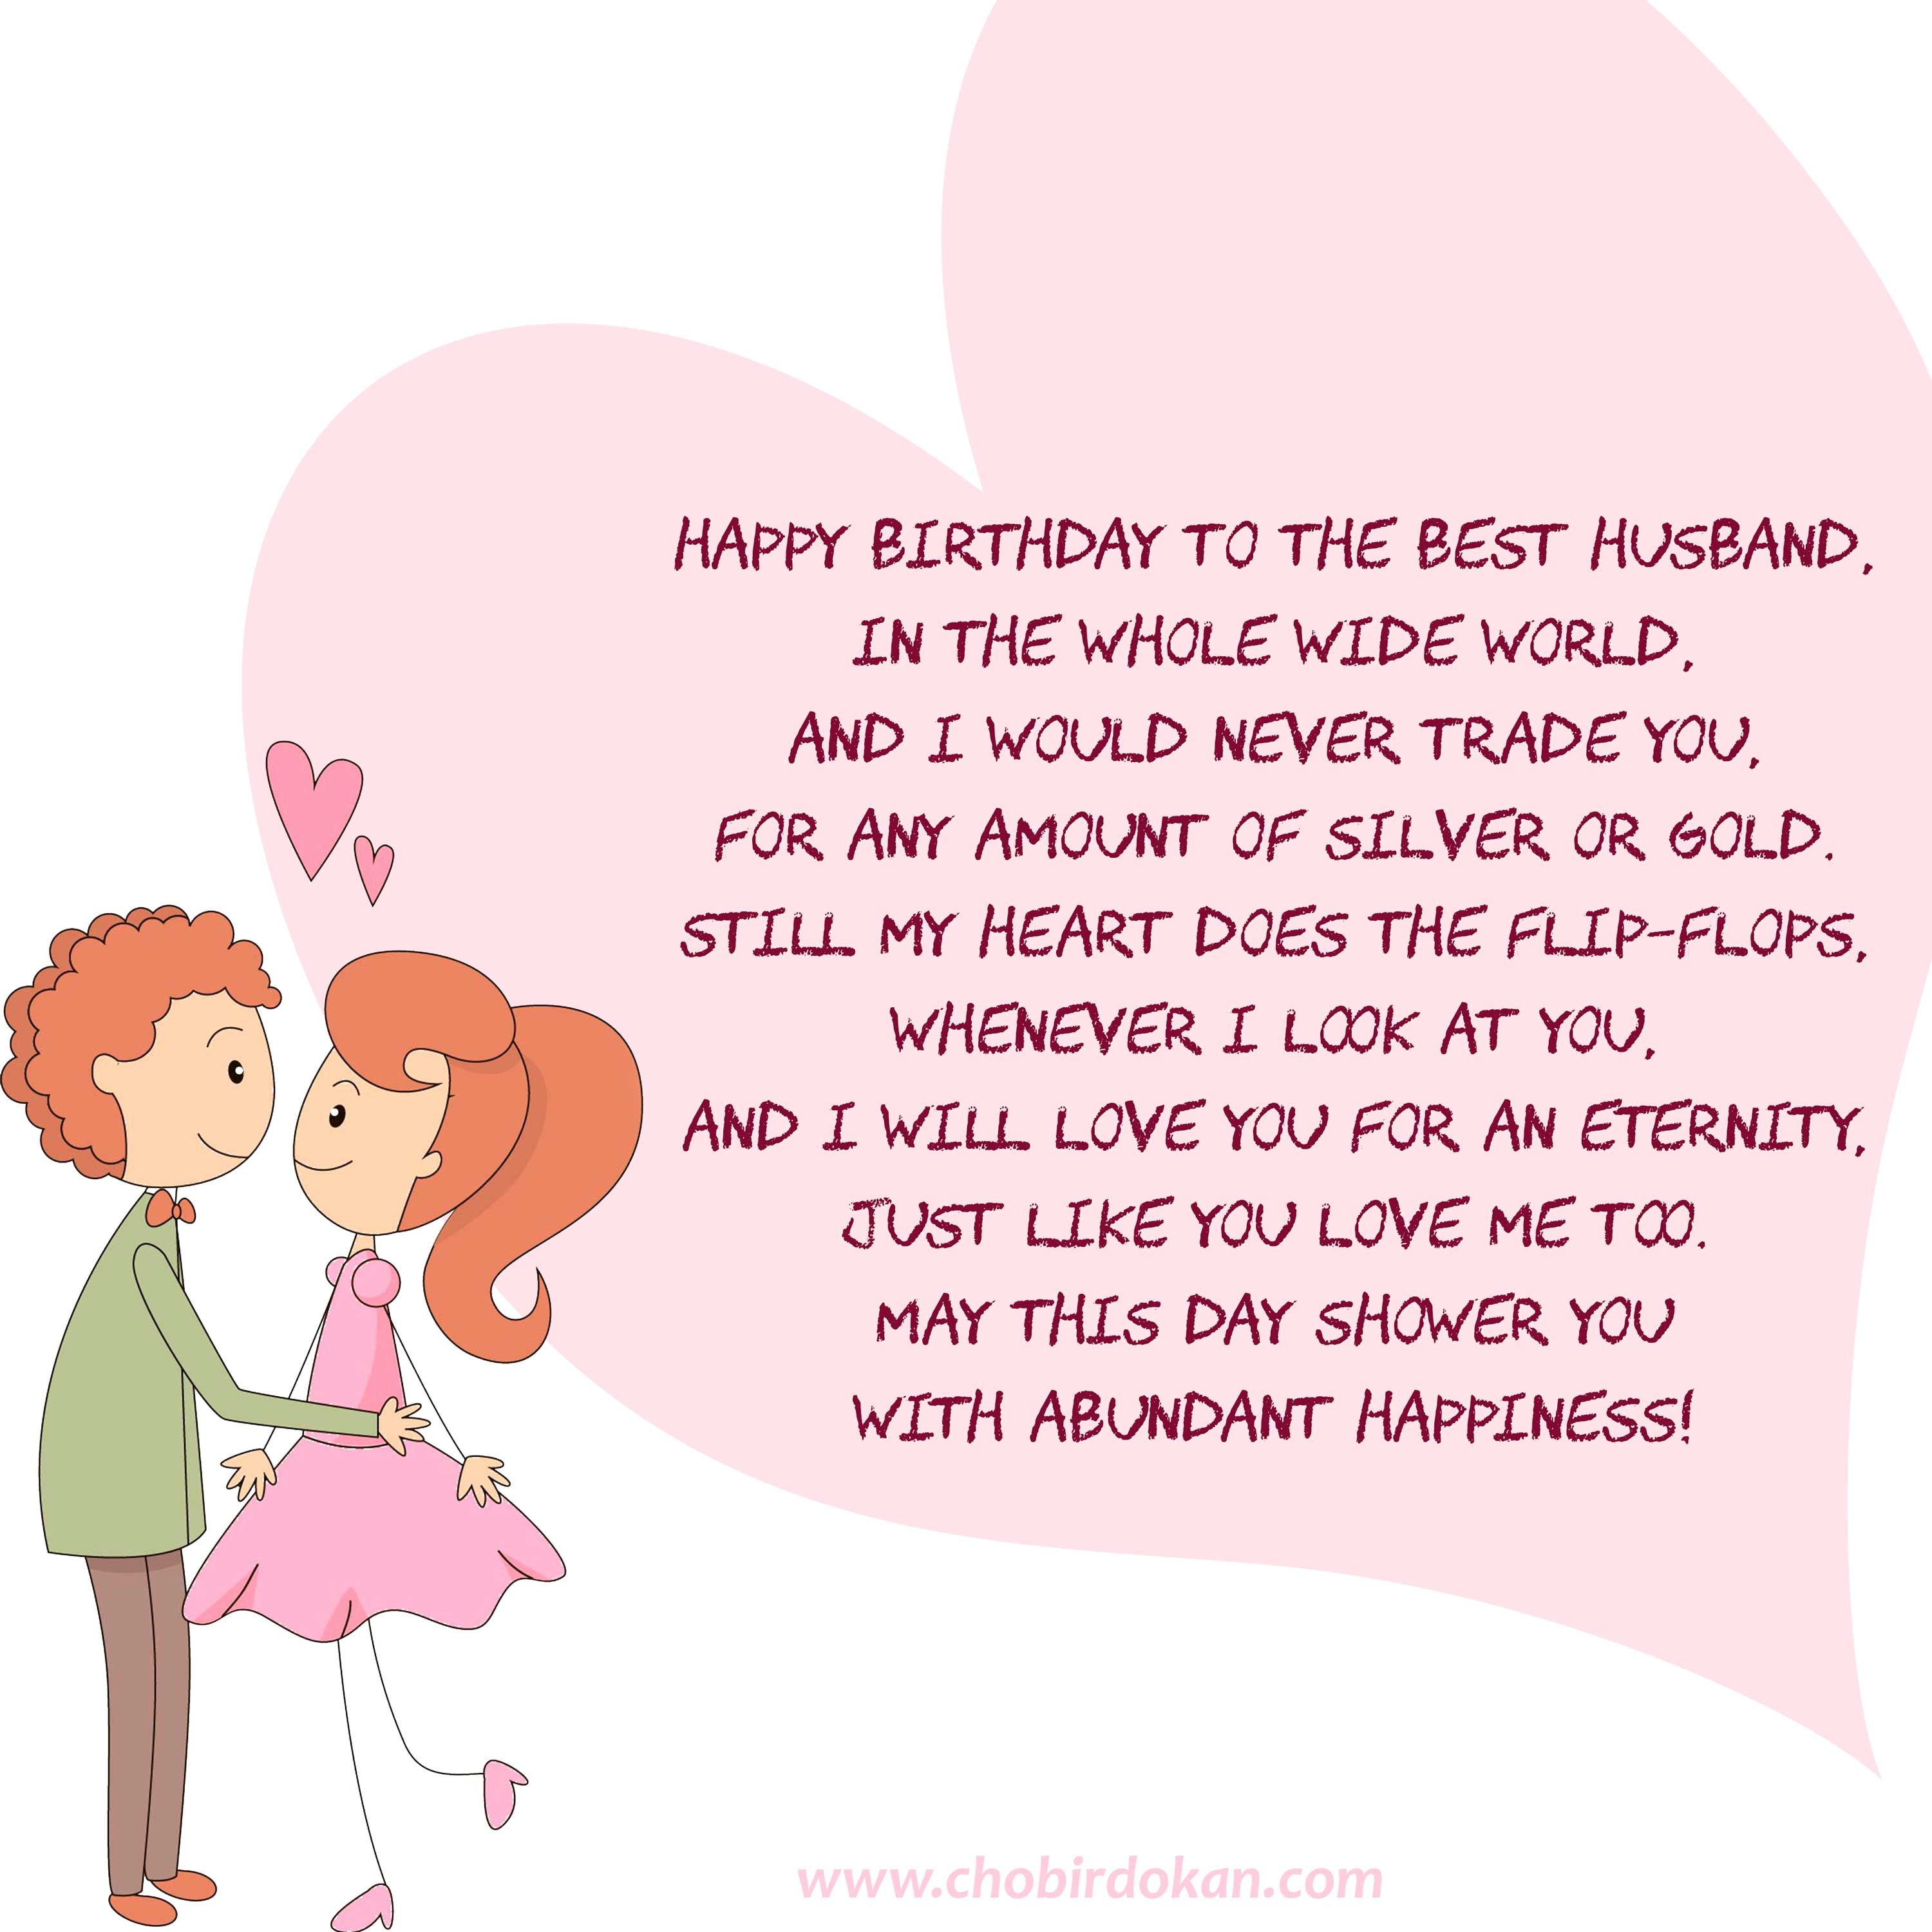 Are you looking for some cute happy birthday poems for him